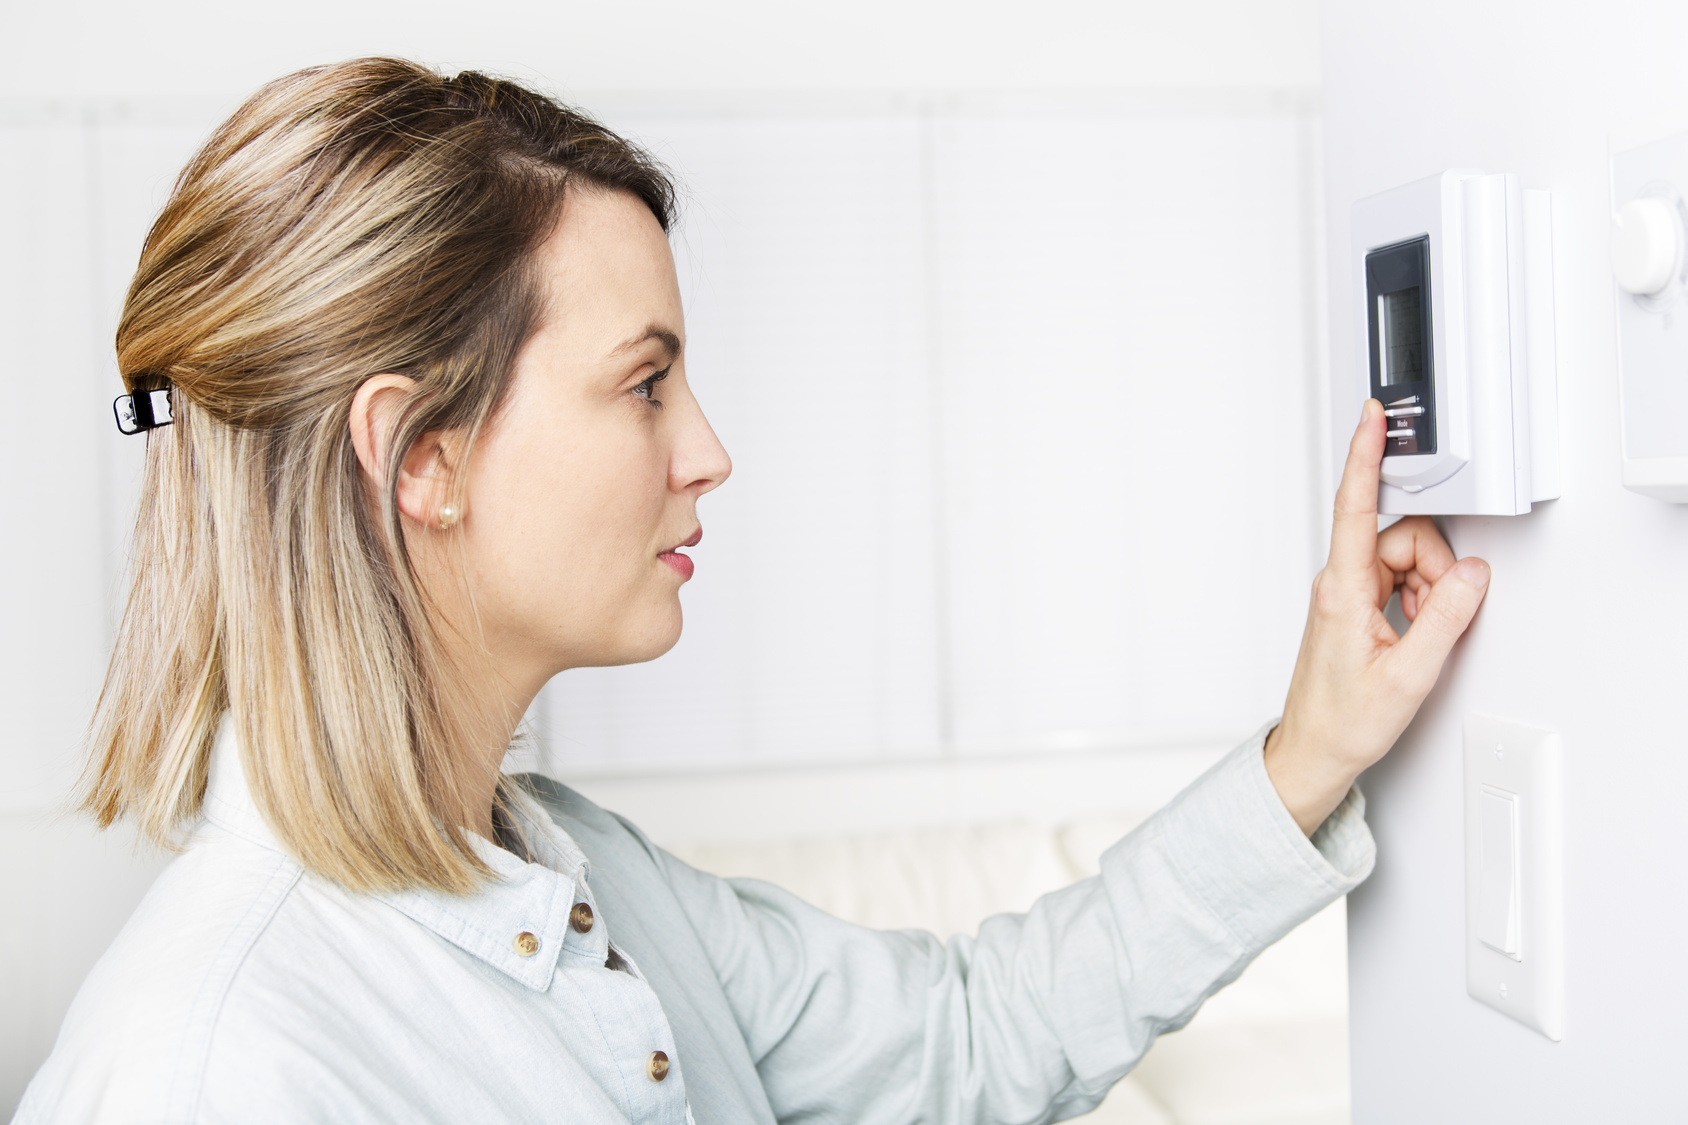 Blonde woman in white shirt changes temperature on electric thermometer.